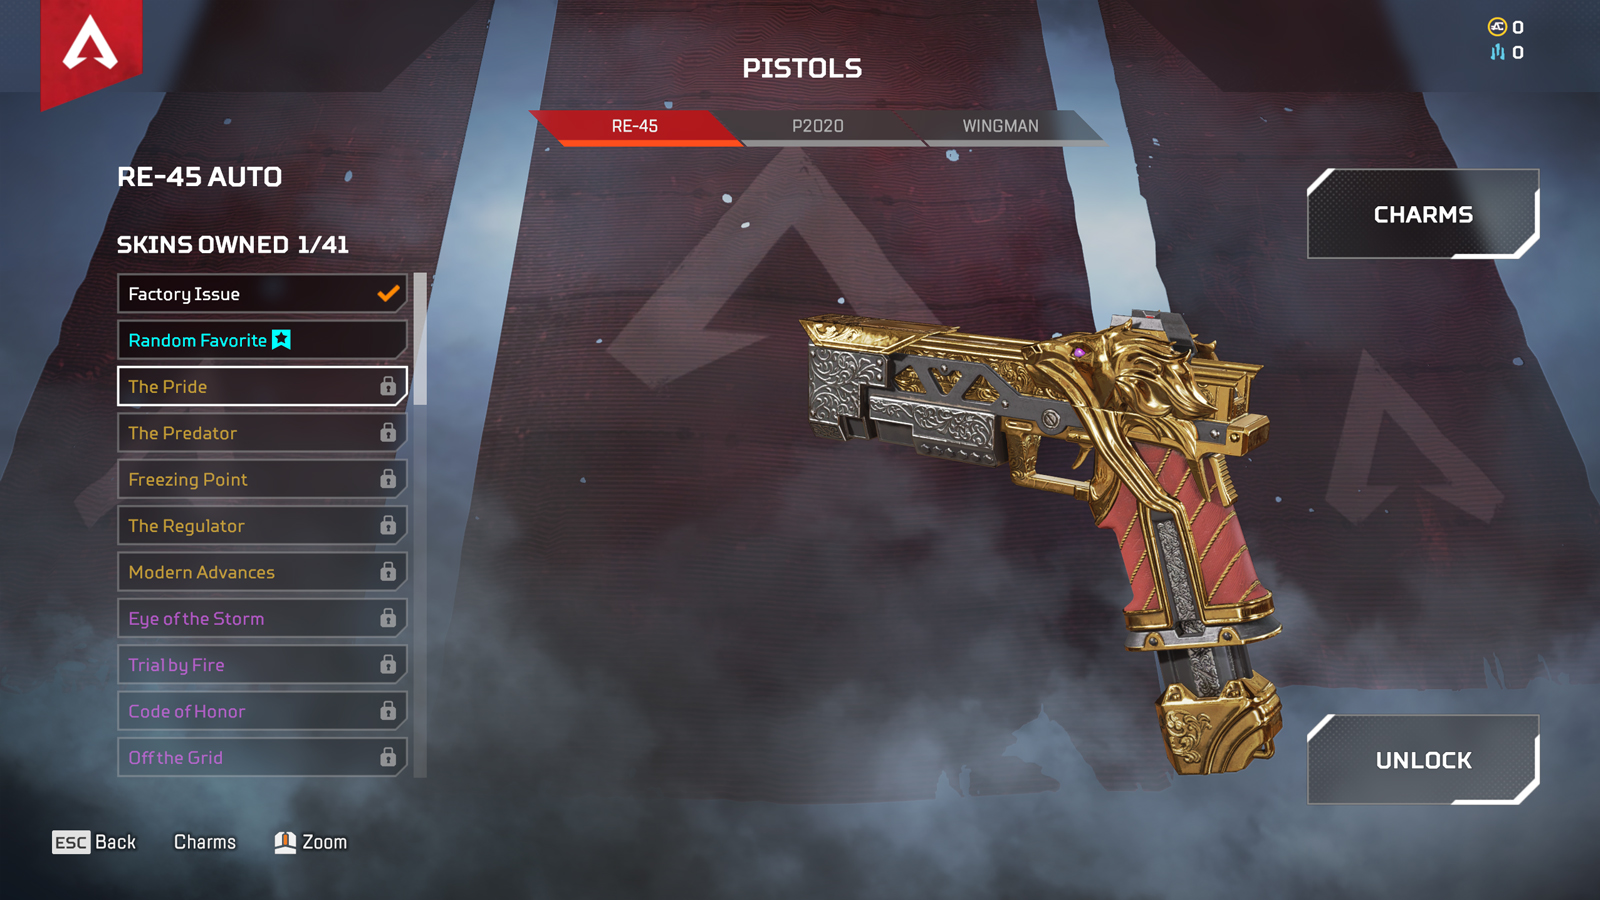 RE-45 Gun in the Apex Legends loadout menu